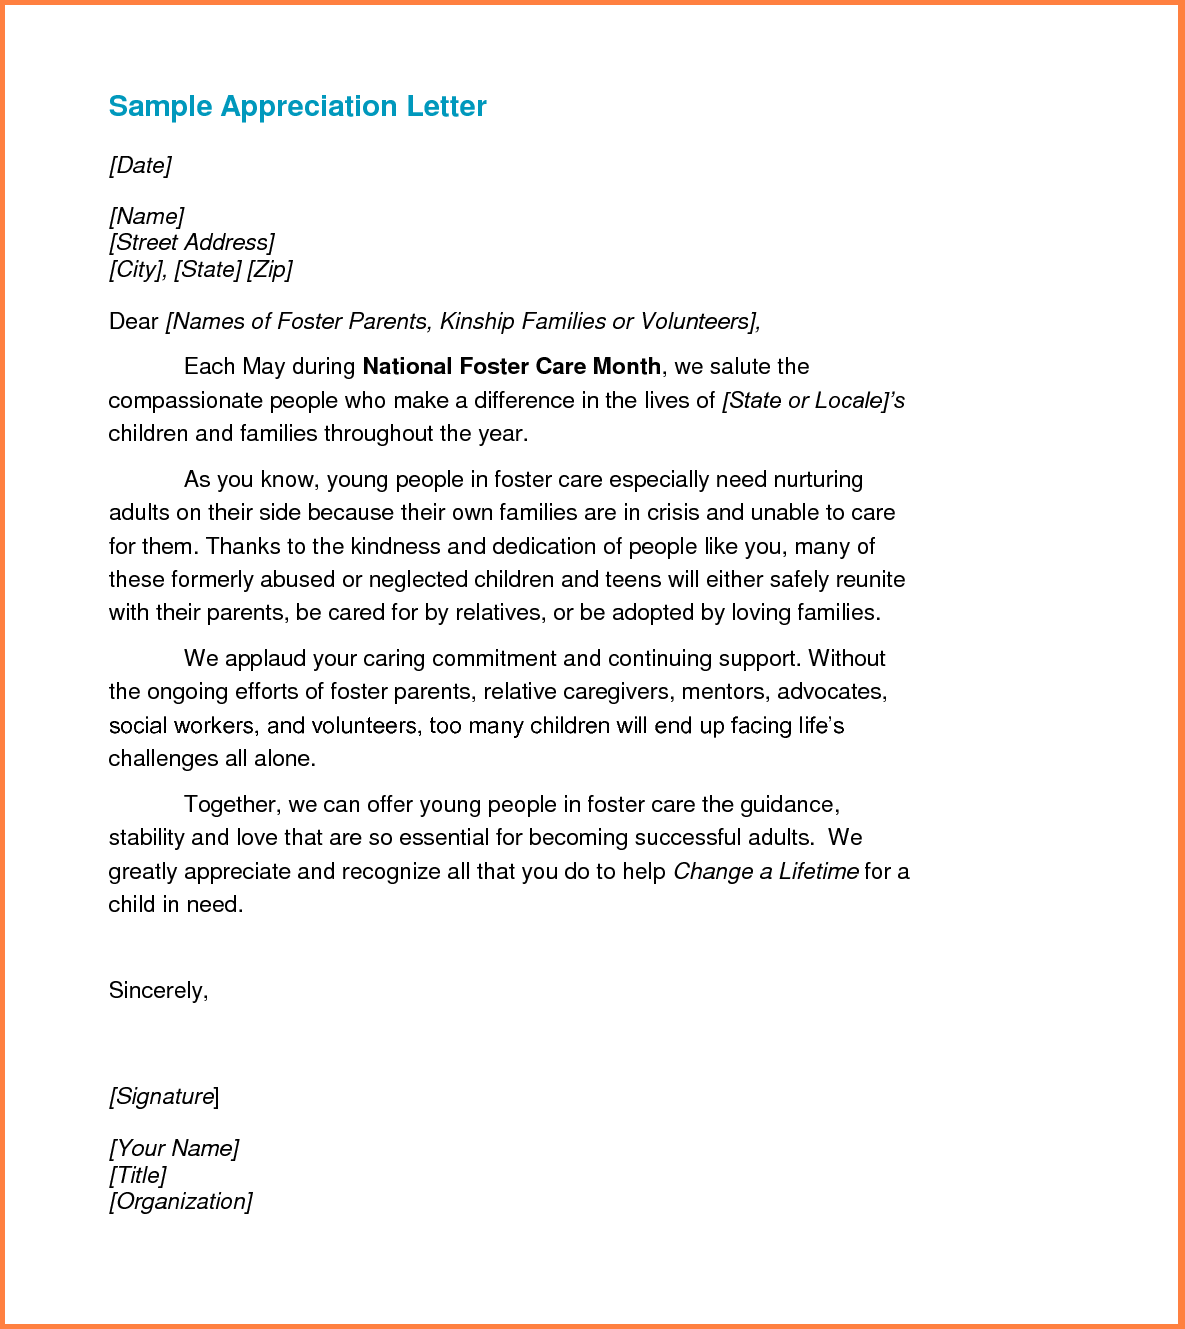 Letter of appreciation sample sample thank you letters to clients for their business popular thecheapjerseys Images